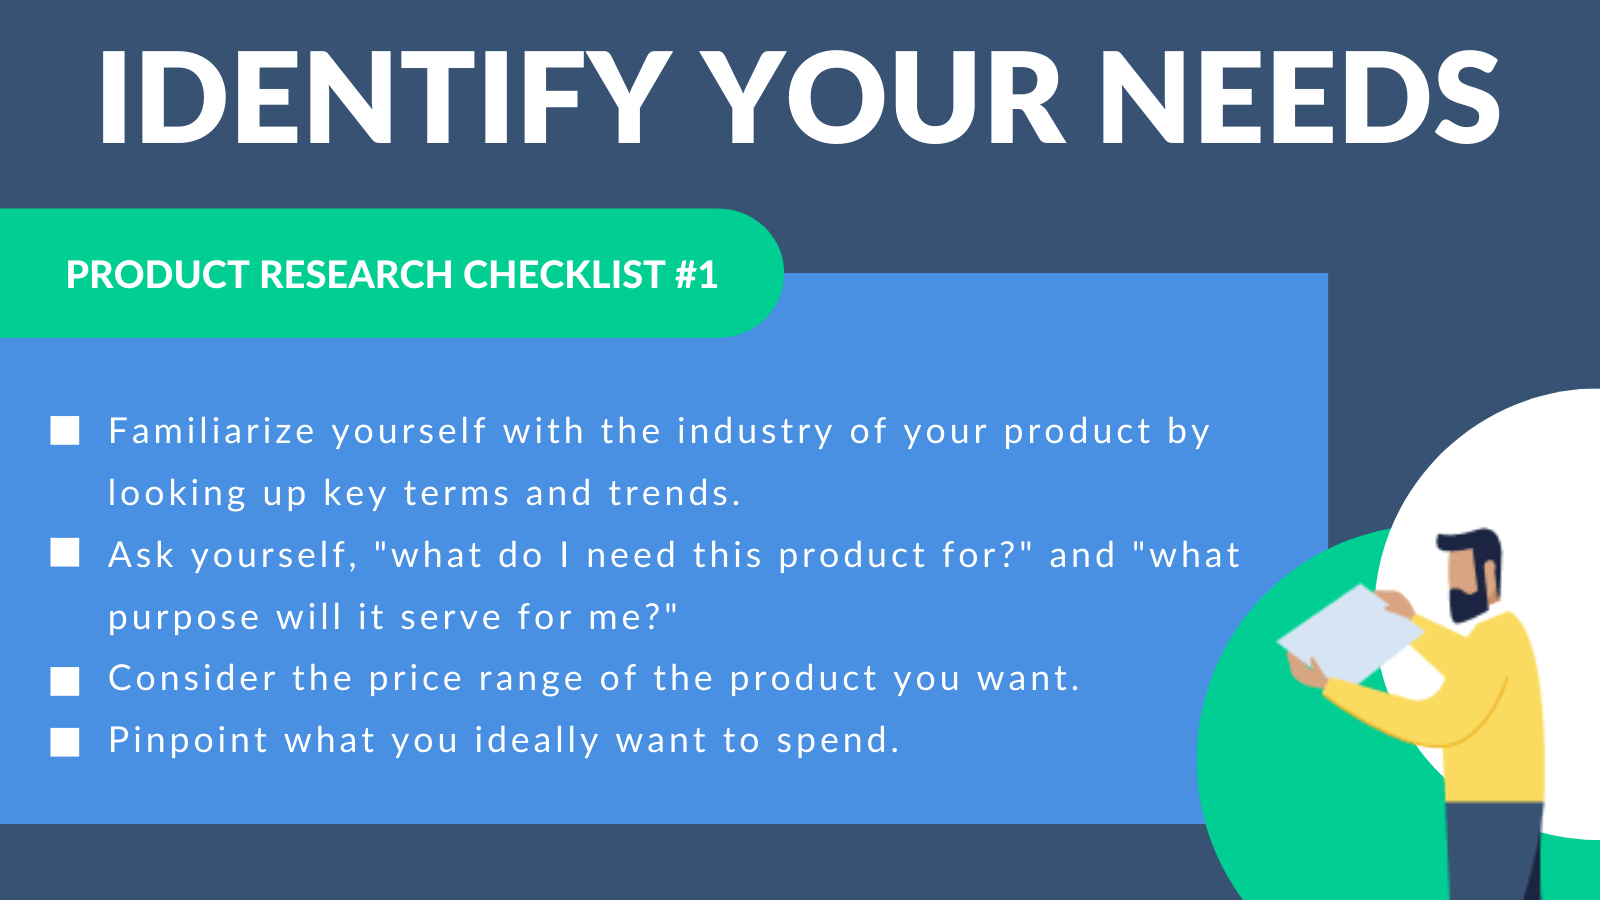 Identify your needs checklist